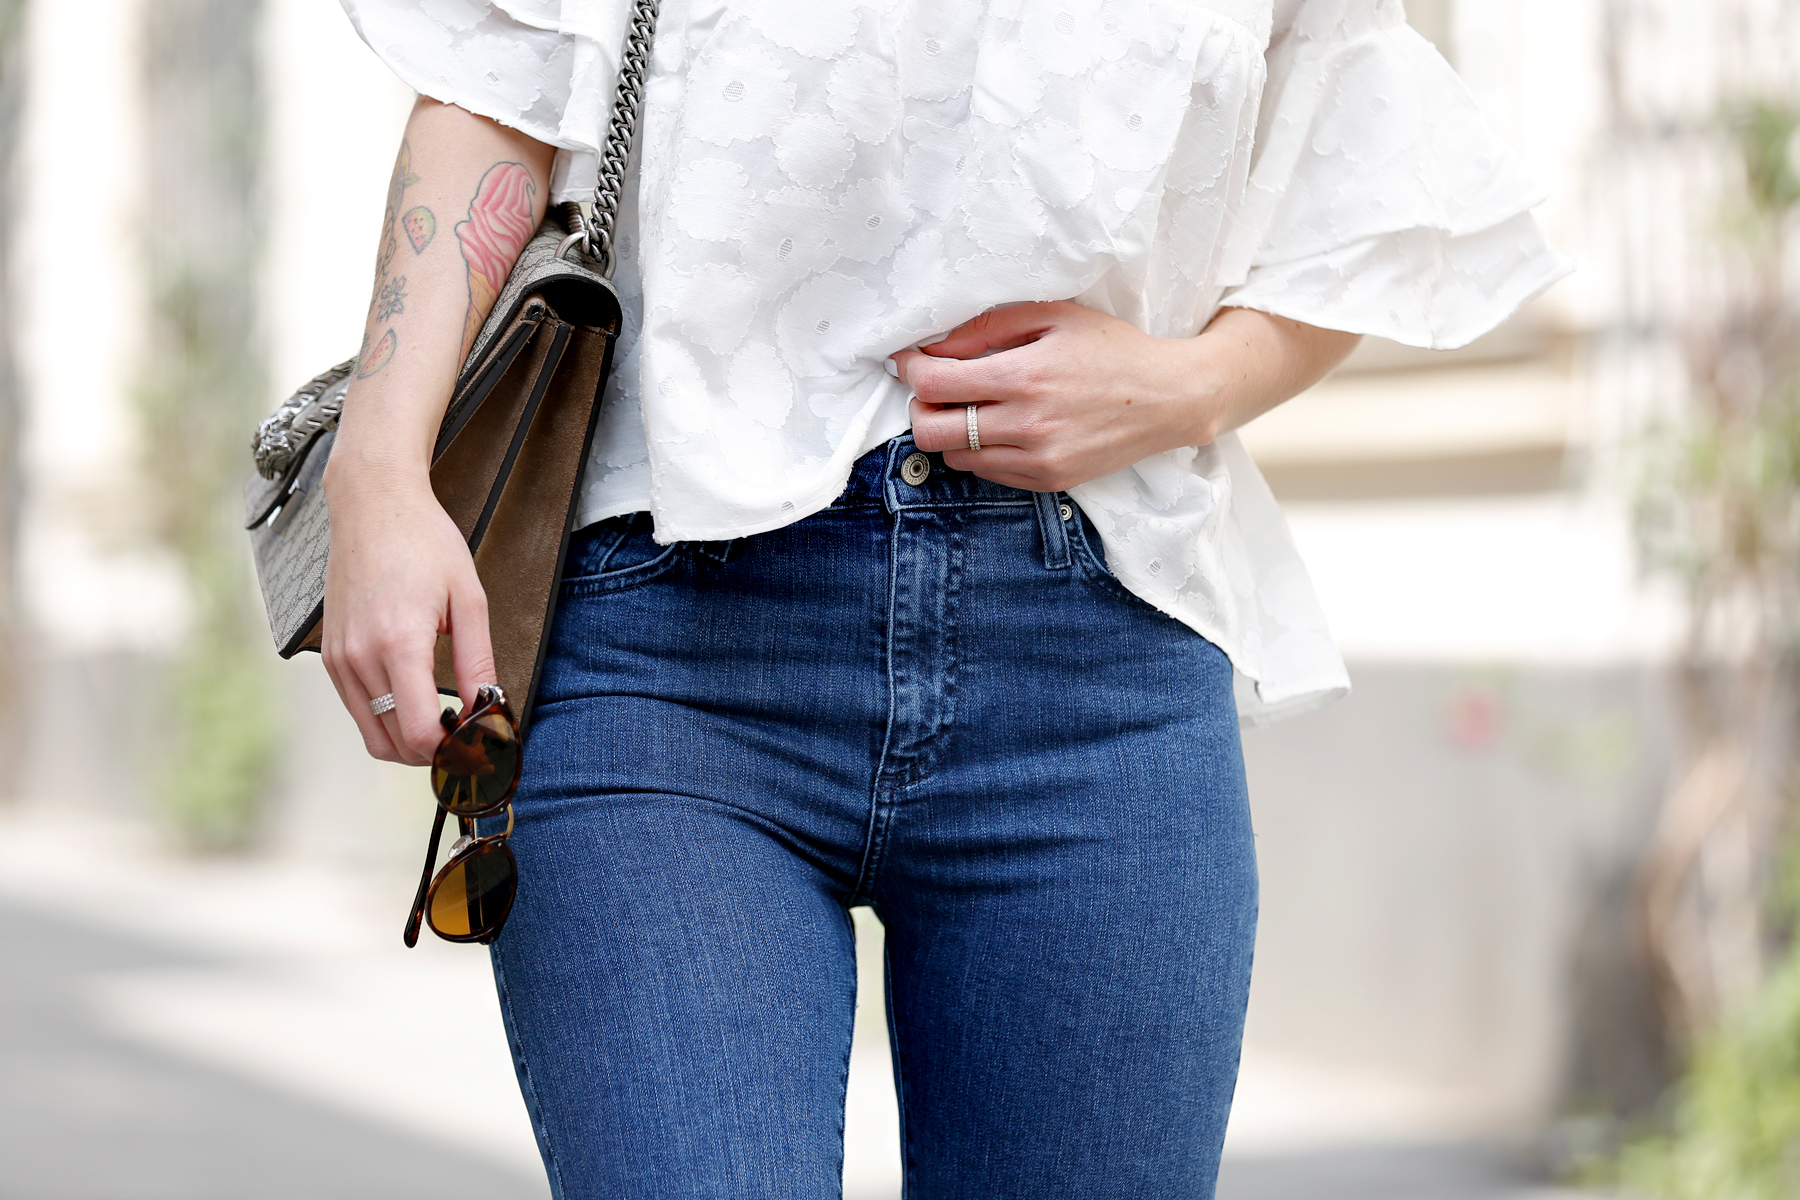 outfit spring summer minimal blue white clean bangs brunette girl cute french parisienne mango fringe jeans denim white blouse shopbop soludos espadrilles gucci dionysus bag luxury fashion modeblog germany ricarda schernus fashionblogger 3